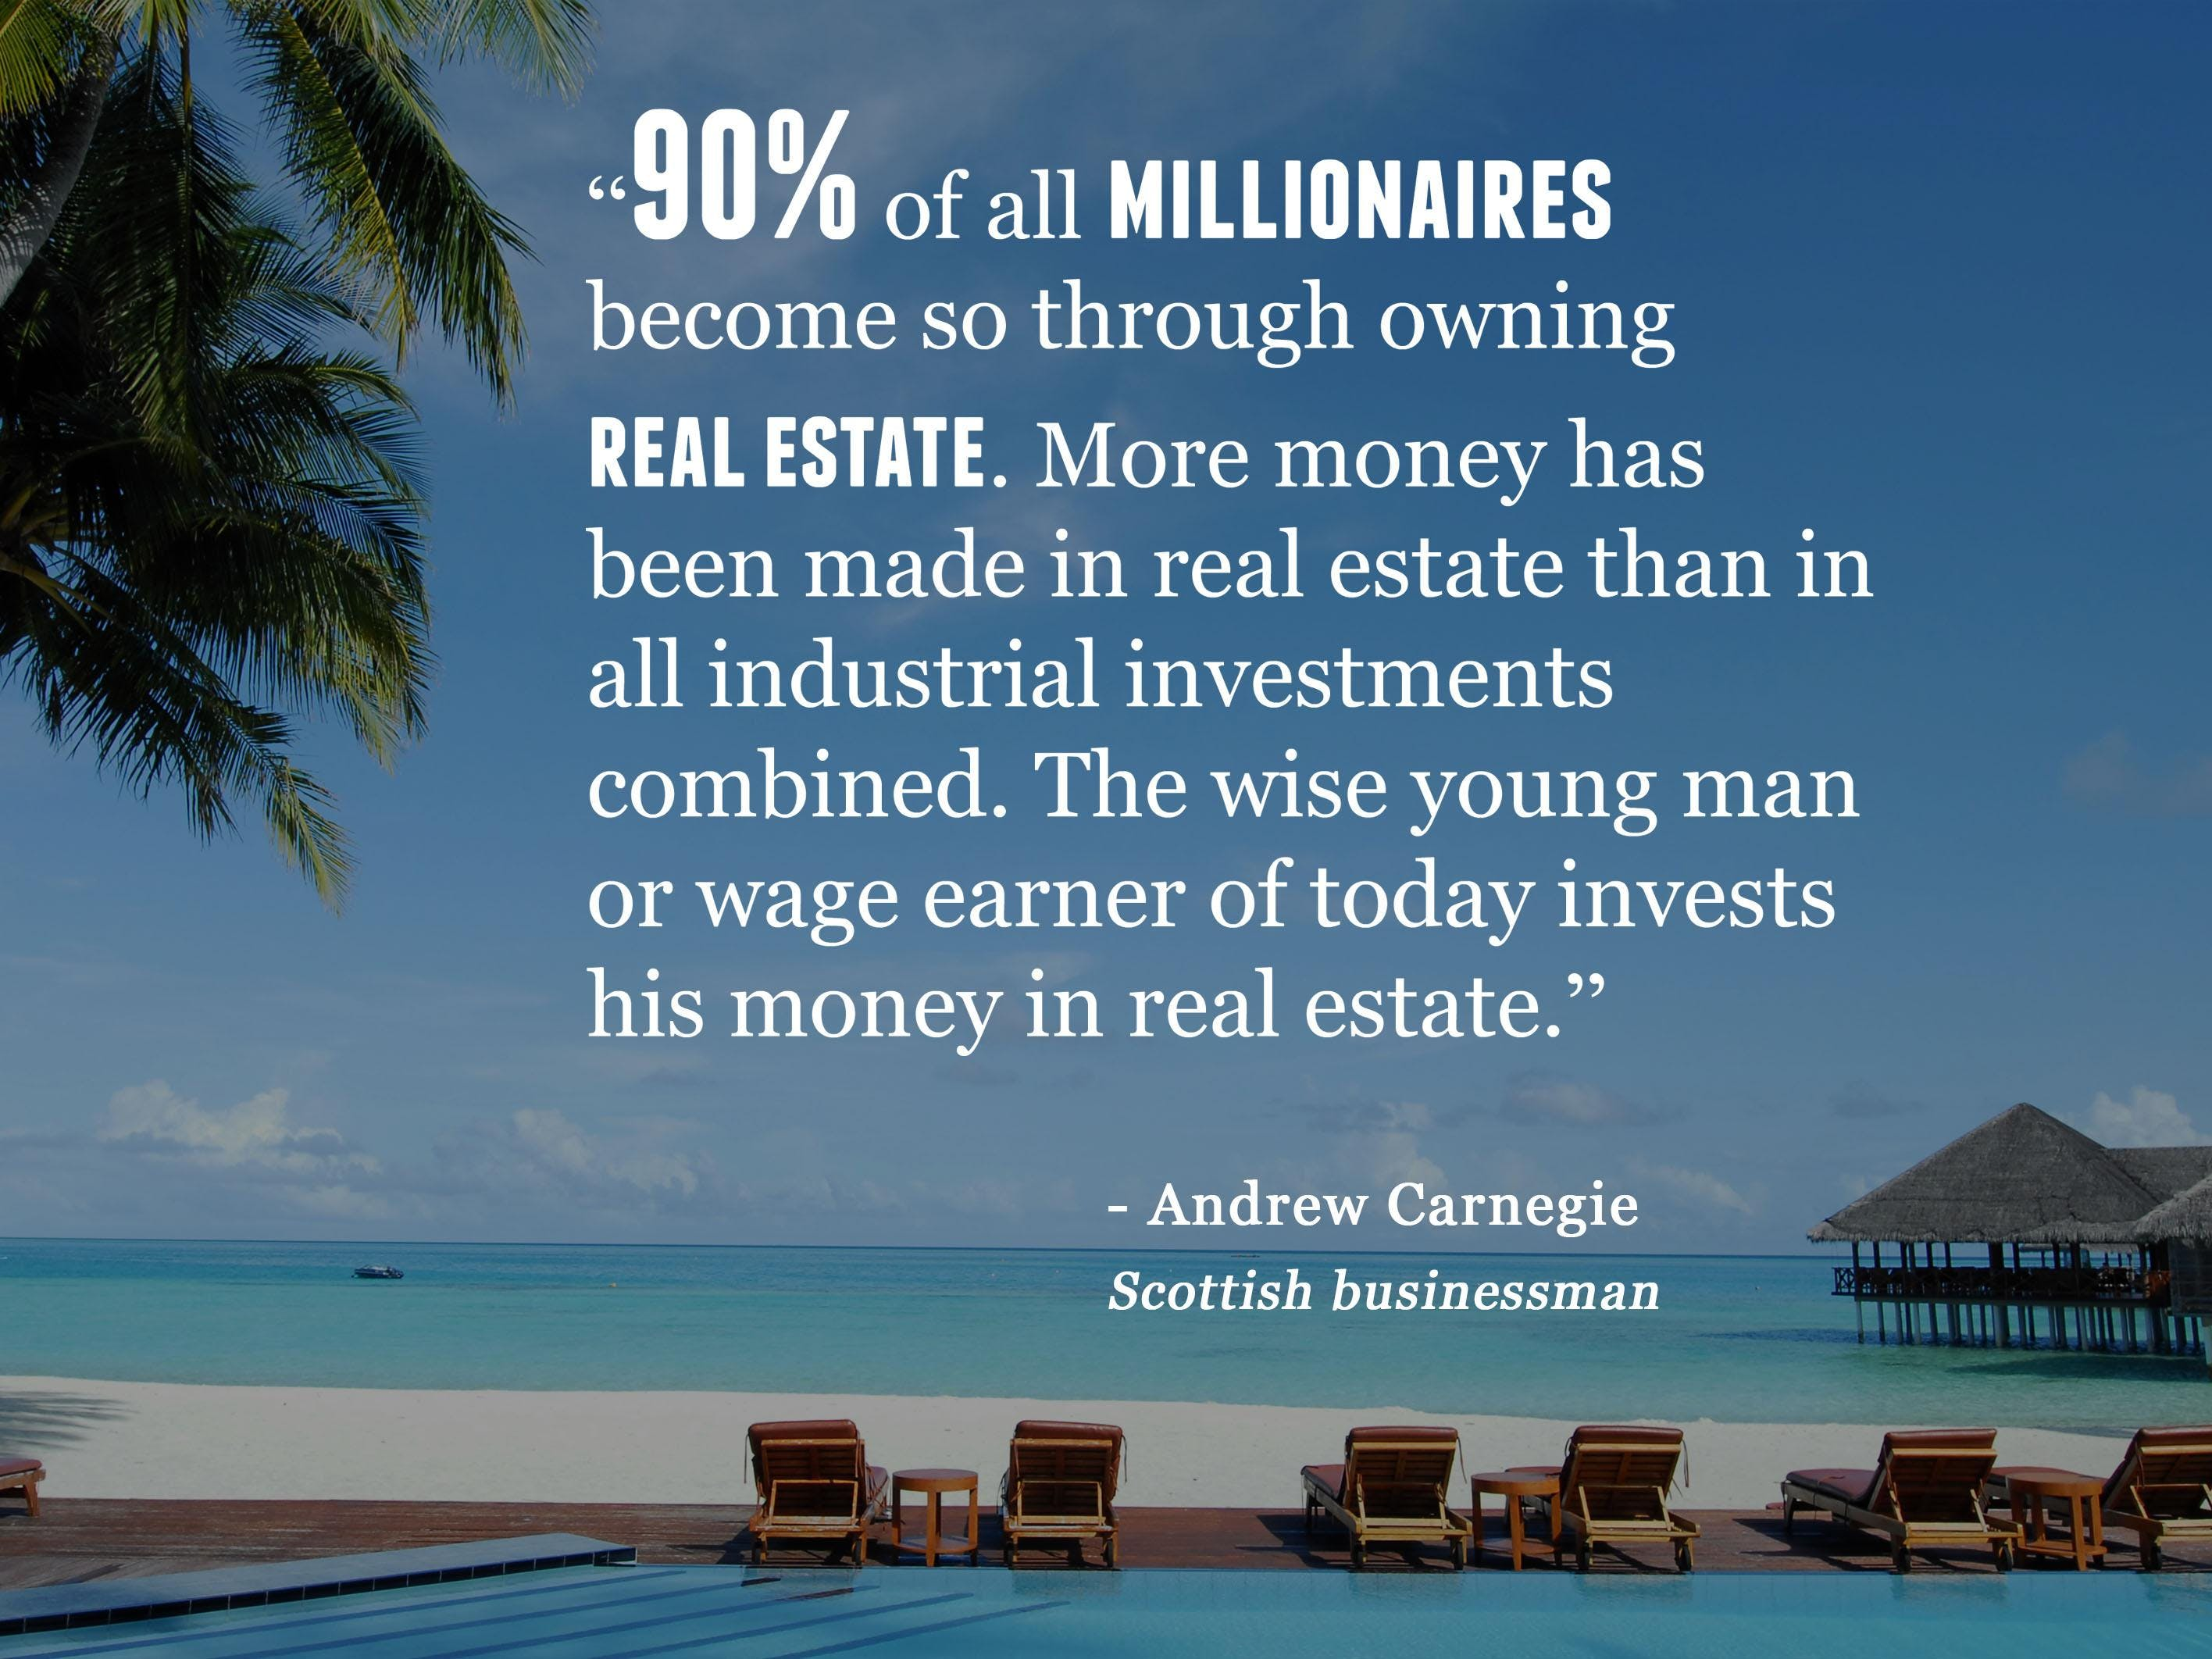 90% OF MILLIONAIRES BECOME SO THROUGH OWNING REAL ESTATE